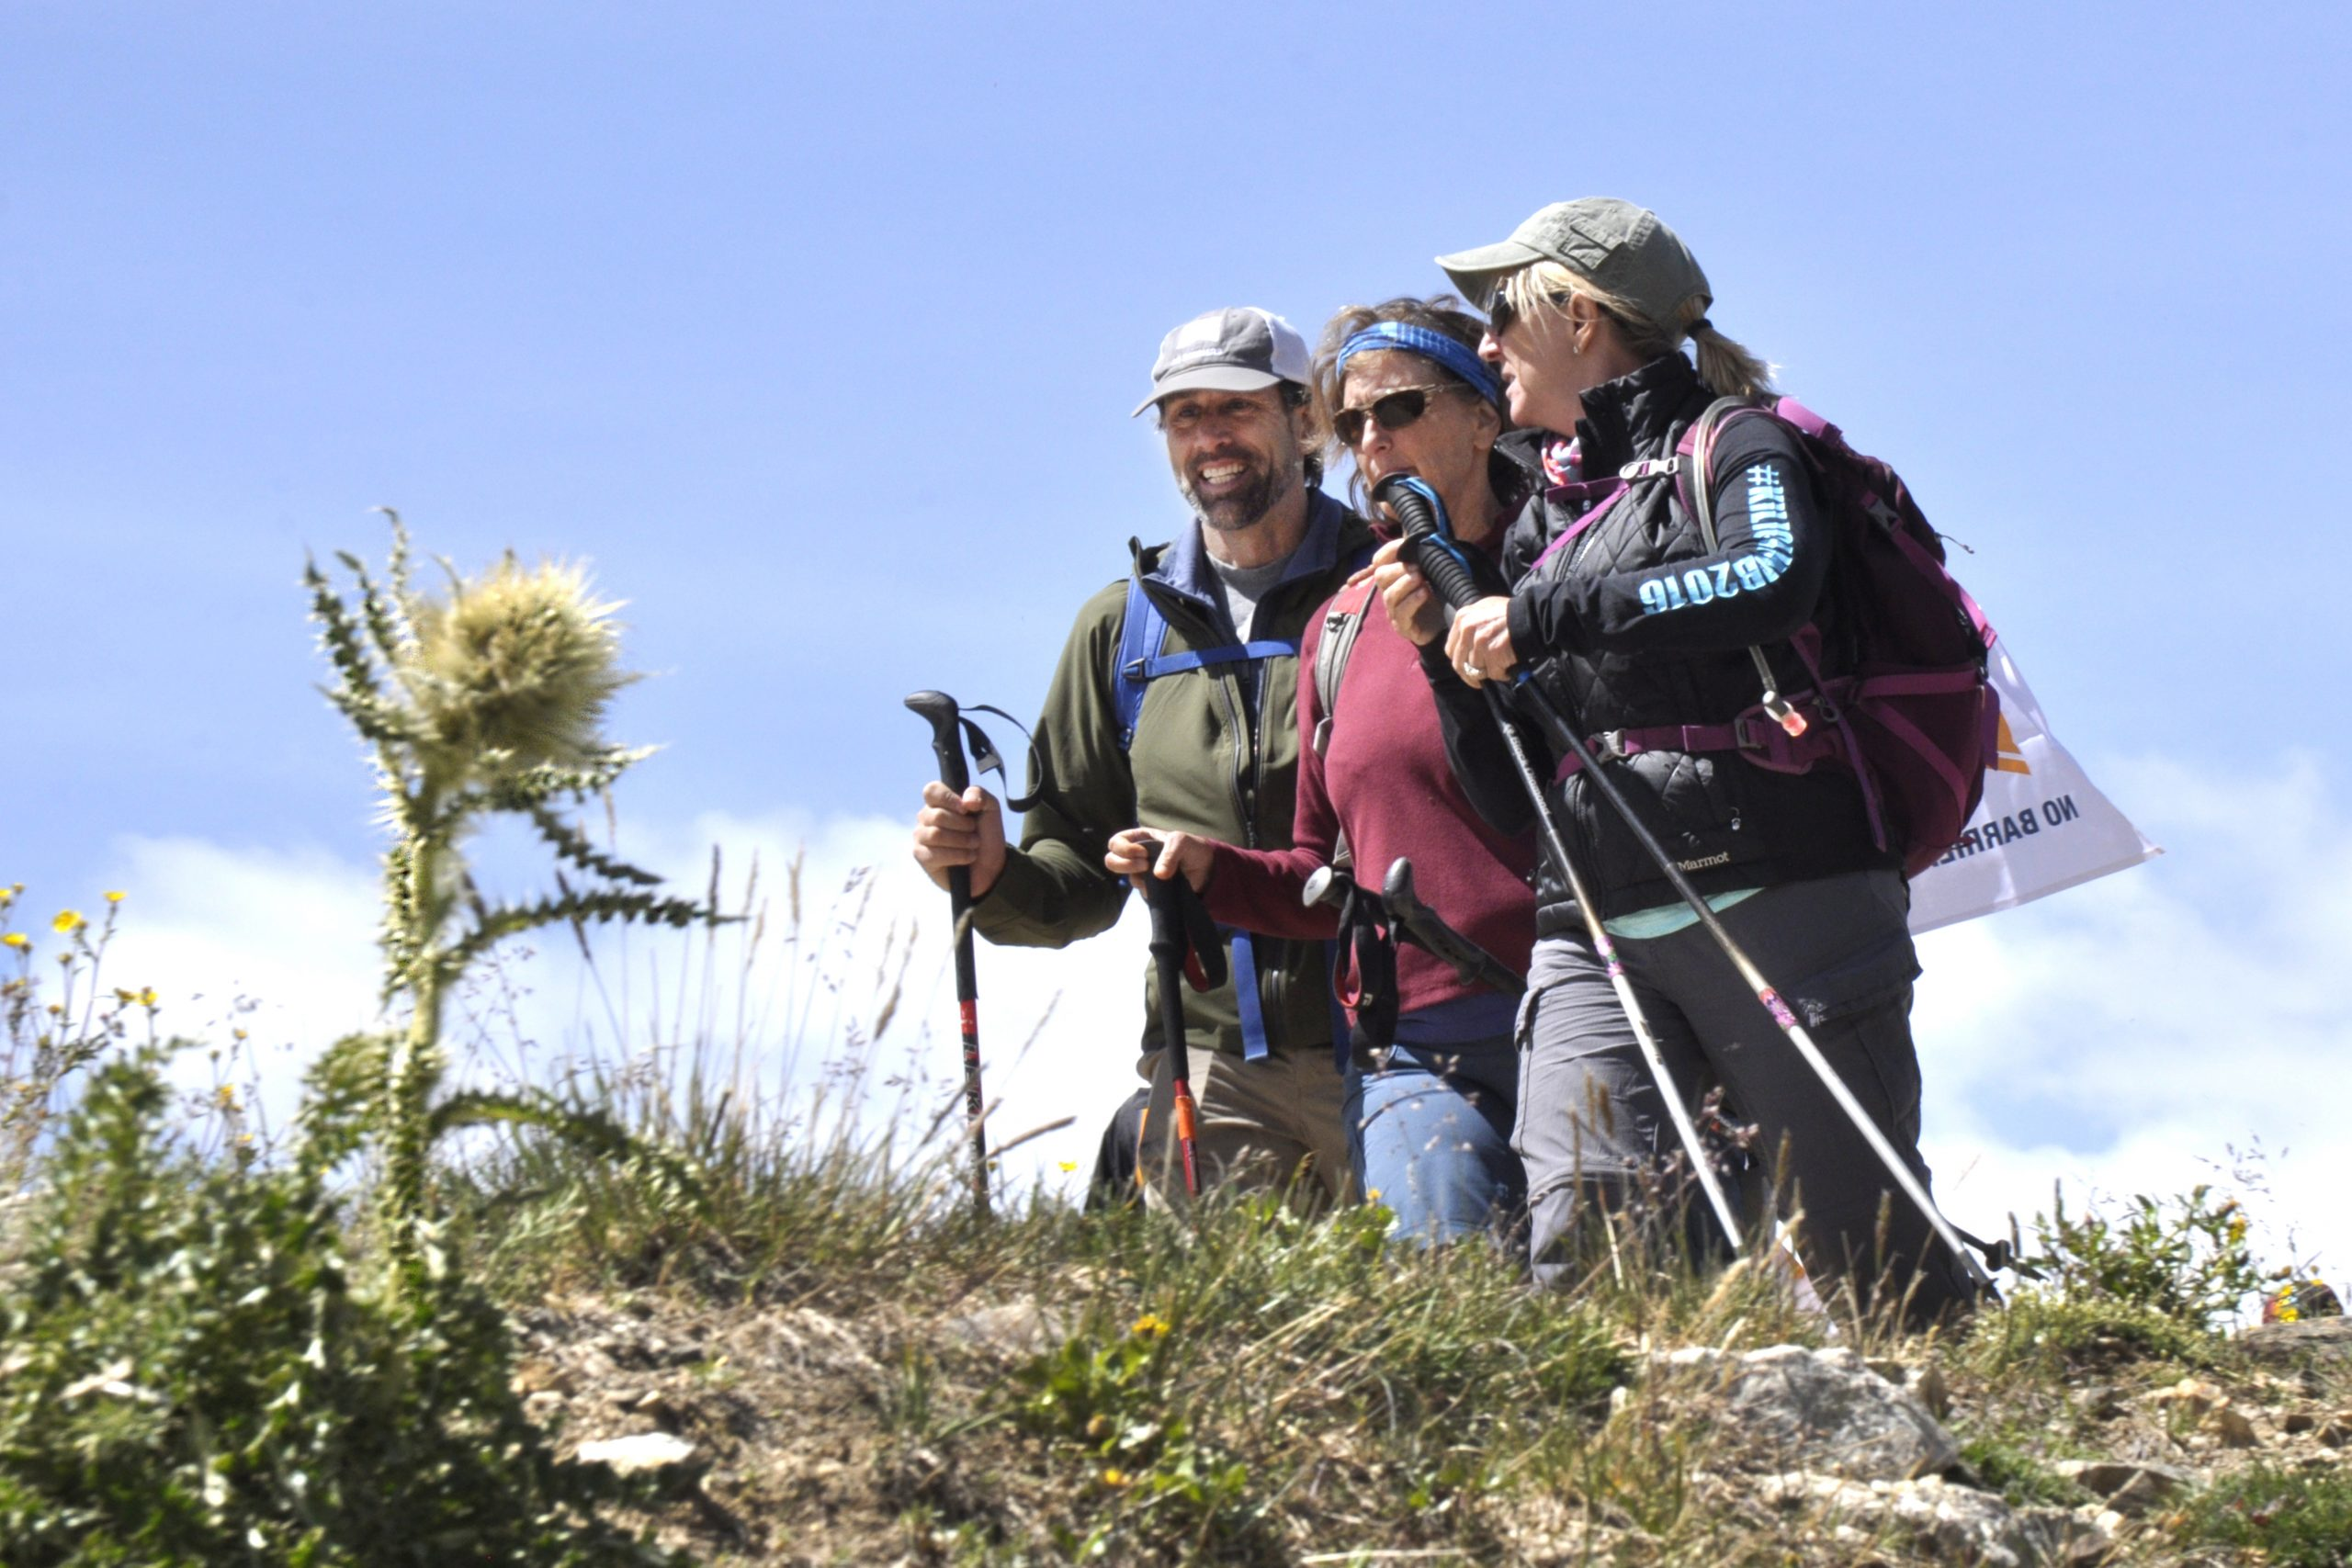 3 Hikers smiling, holding hiking poles.